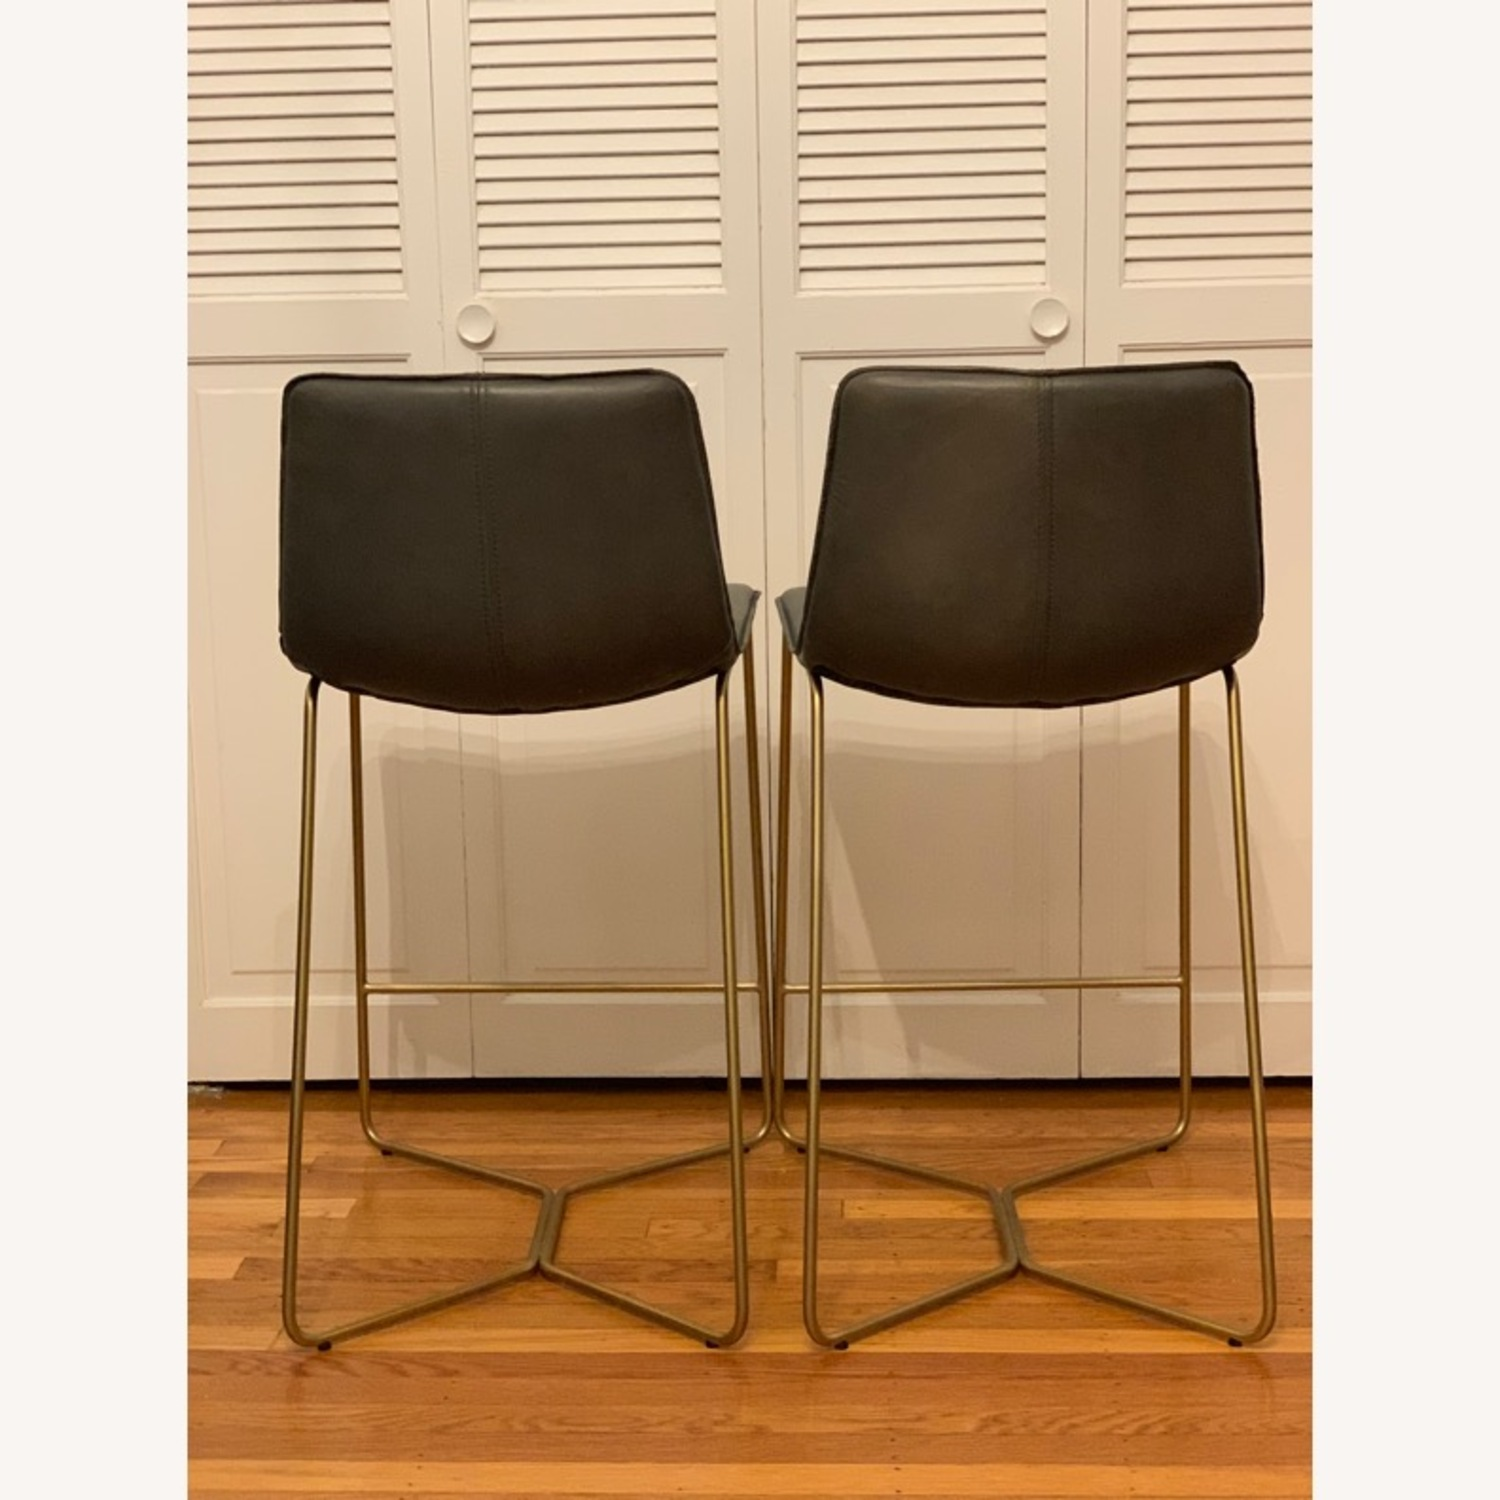 West Elm Slope Leather Counter Stools - image-2